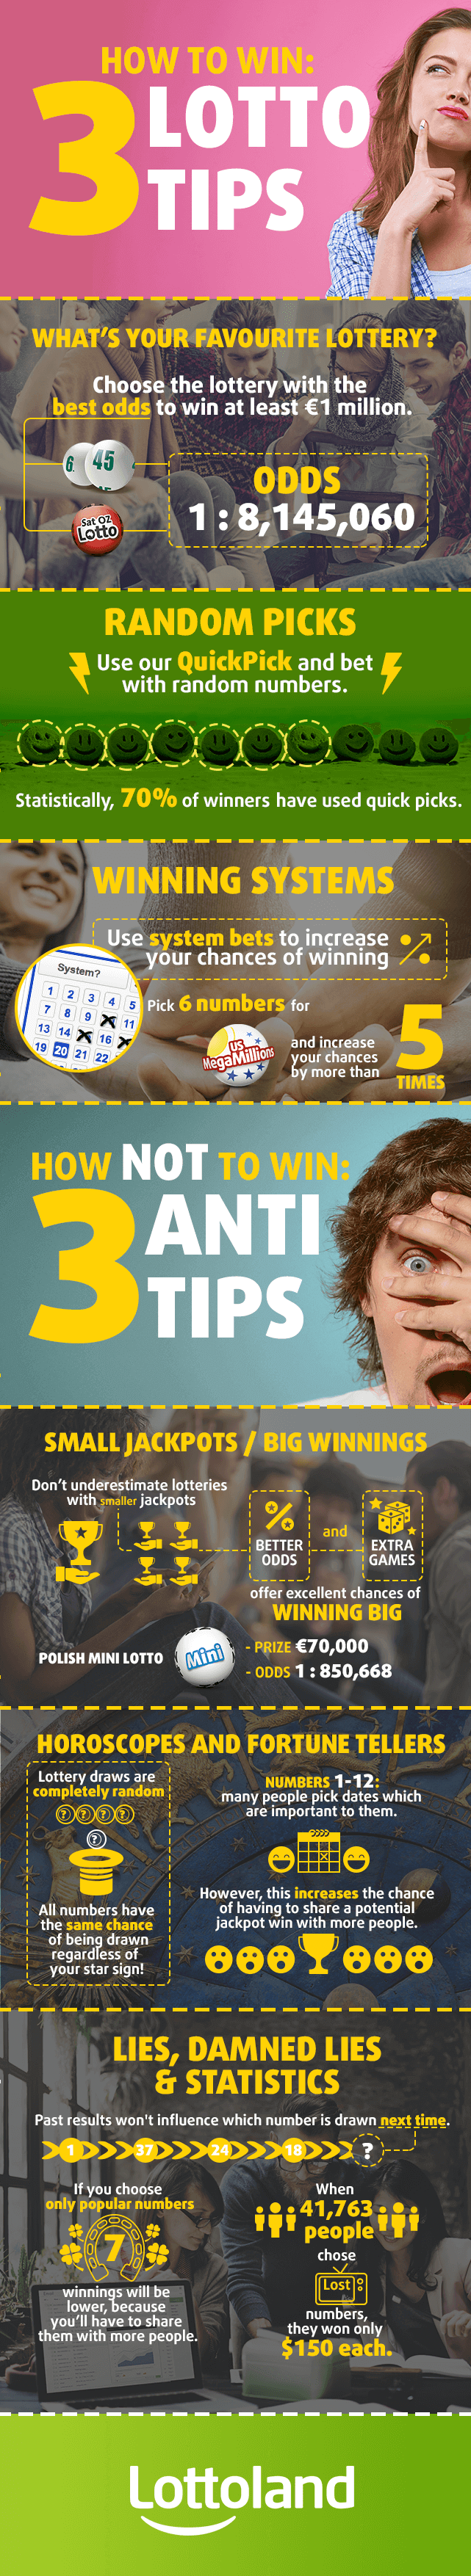 Lottery Winning Tips: 3 Tips and 3 to Avoid